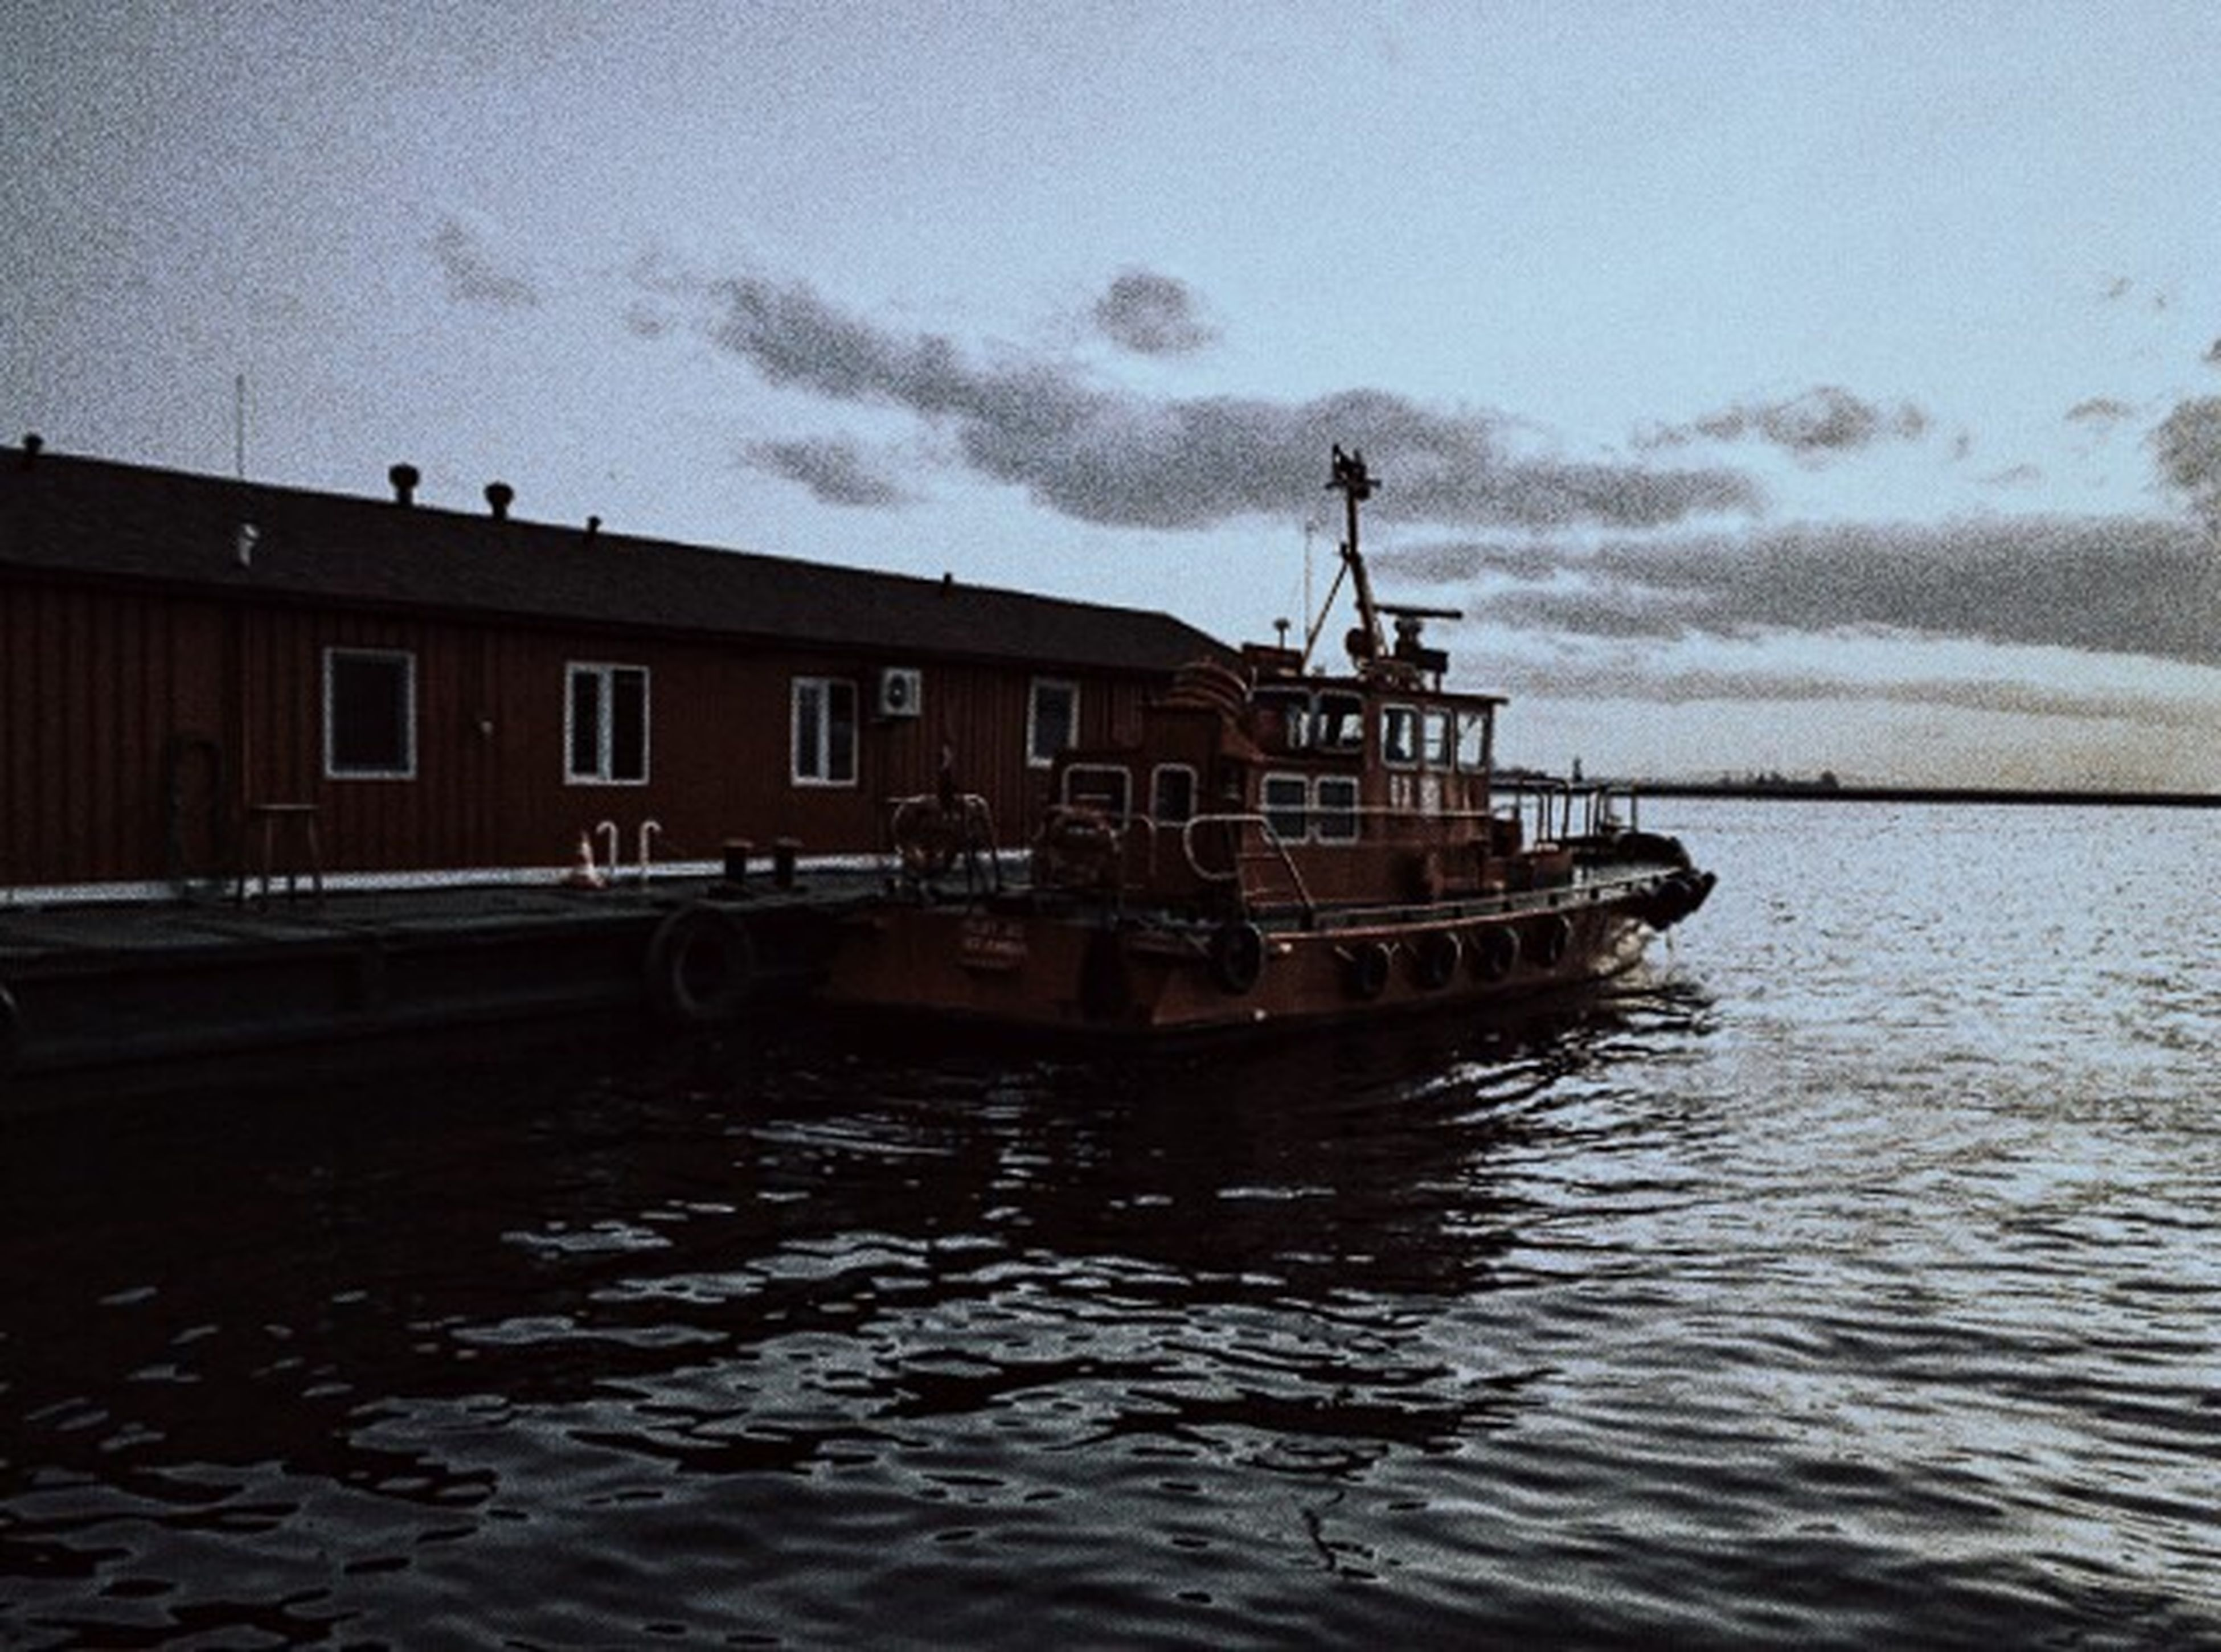 architecture, water, built structure, sky, waterfront, cloud - sky, rippled, city, outdoors, building, cloud, day, cloudy, nature, no people, canal, overcast, travel destinations, weather, city life